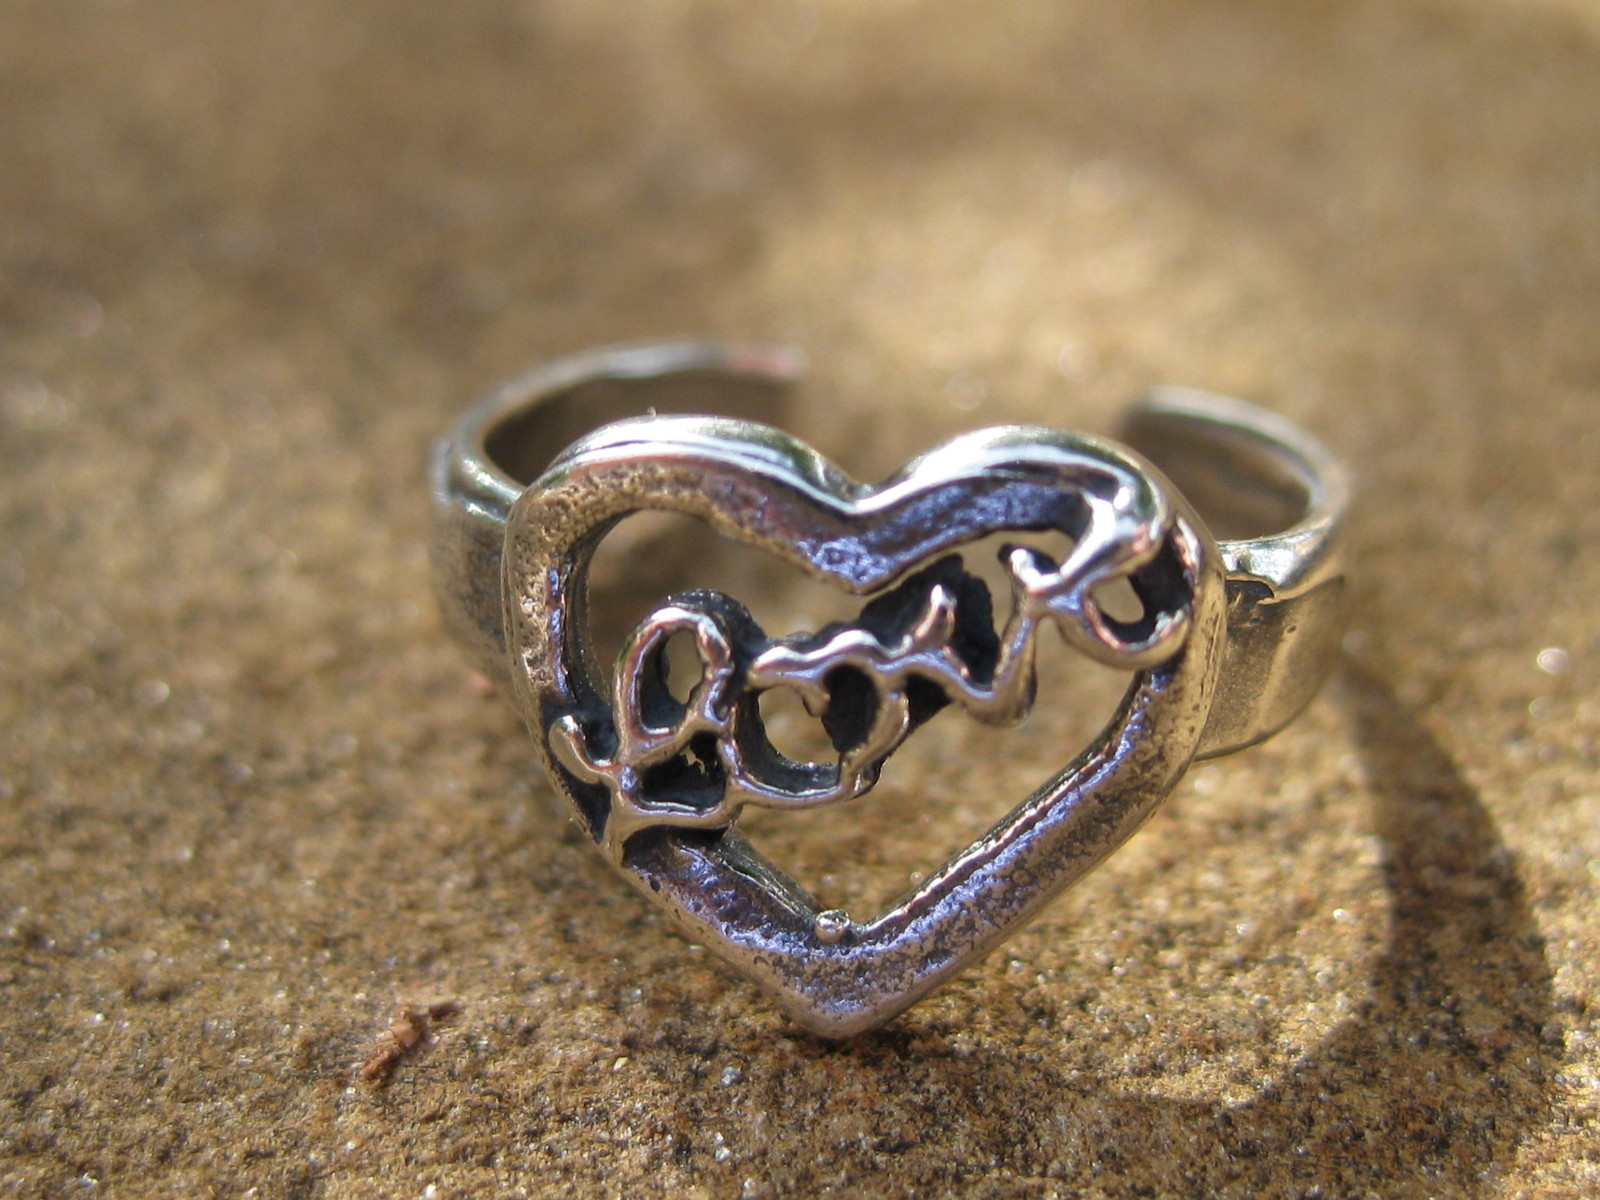 Haunted Be desired toe ring 925 sterling silver attraction spells triple cast - $25.00